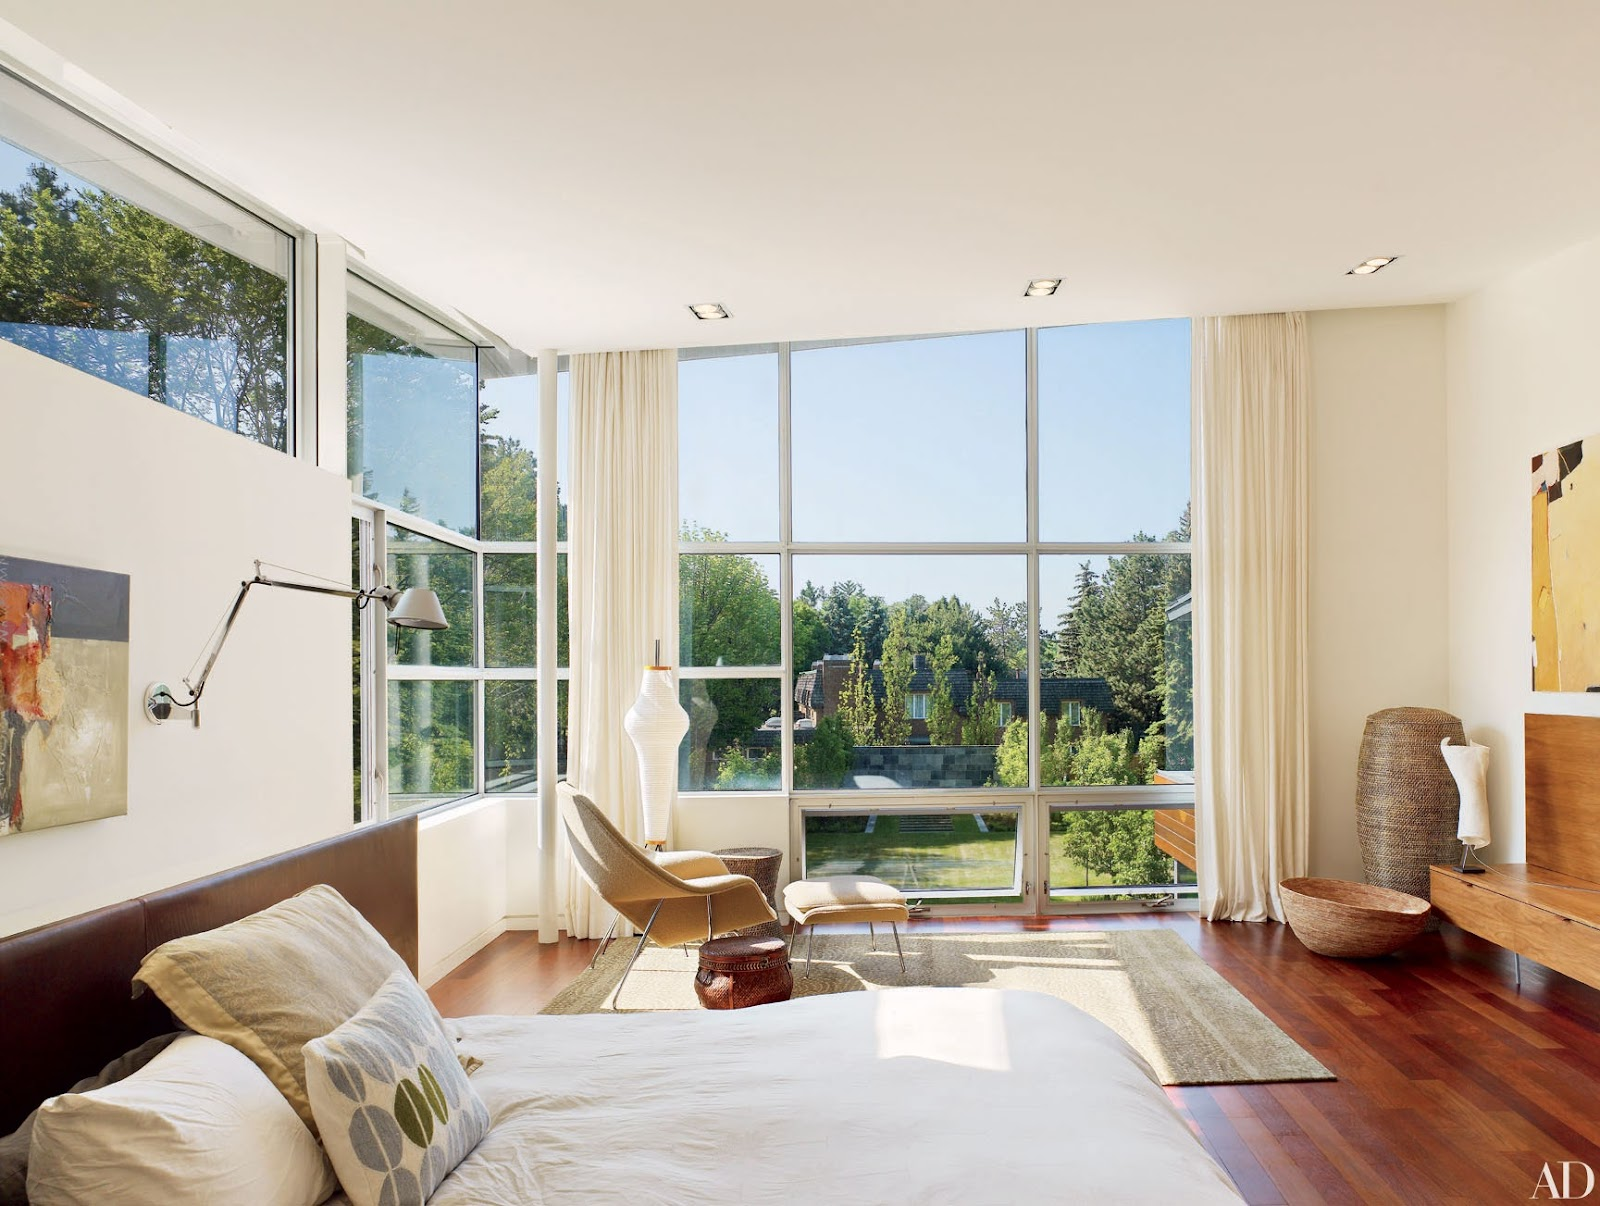 Let The Natural Light in the Couples Bedroom Ideas